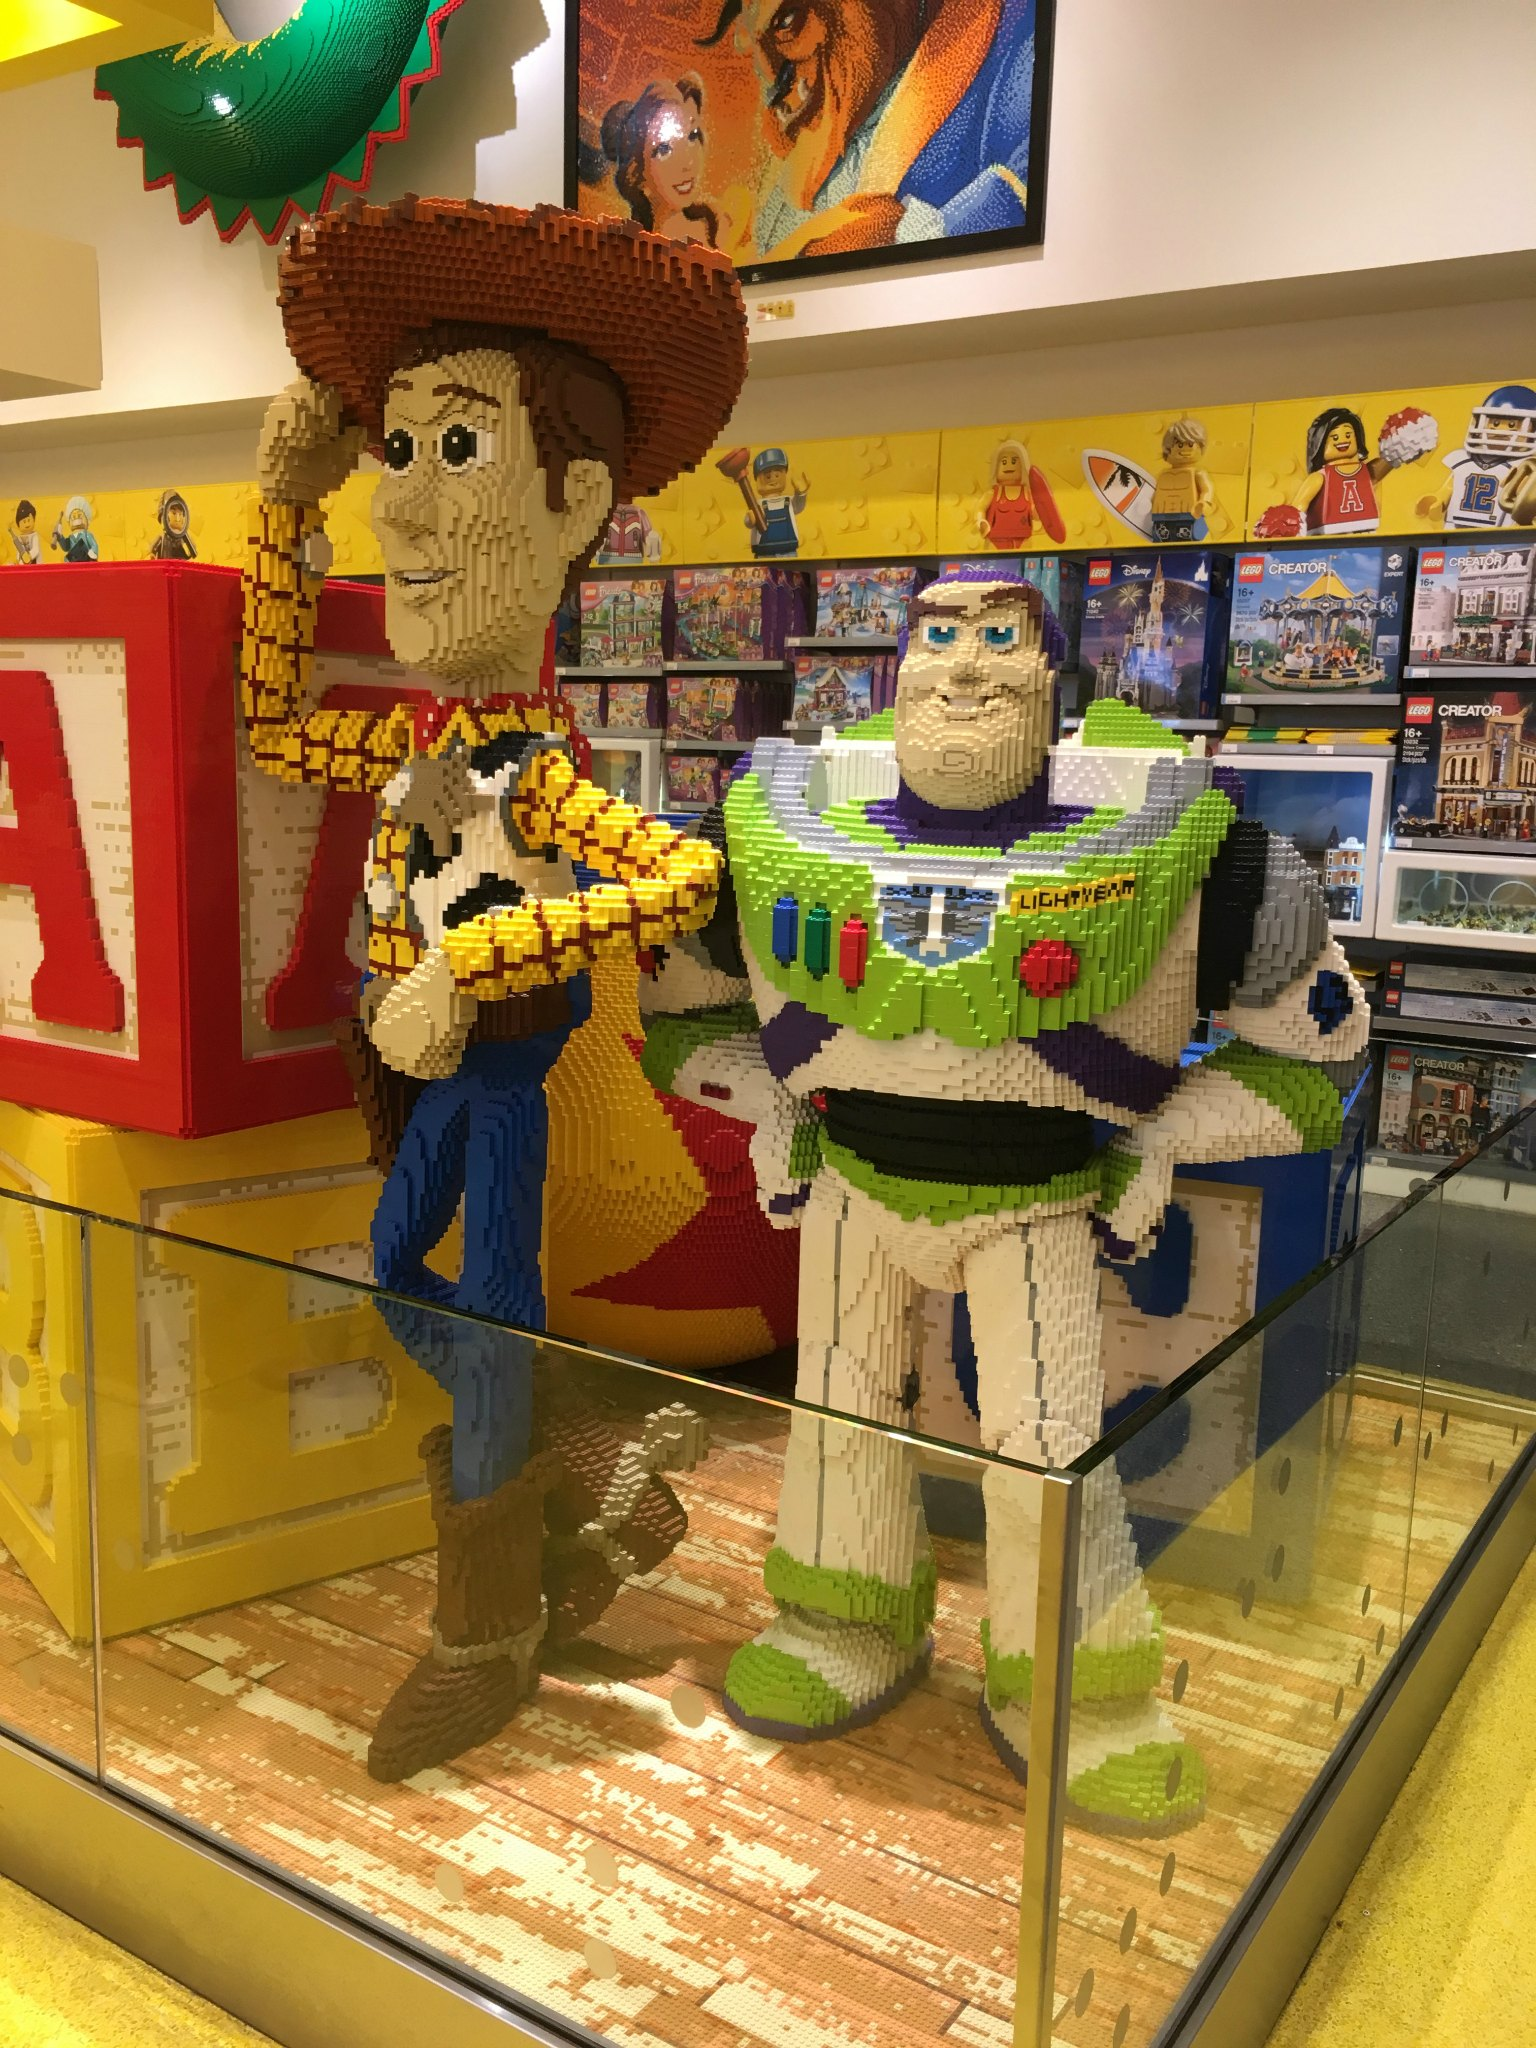 Toy Story characters at the Lego store at Disneyland Paris